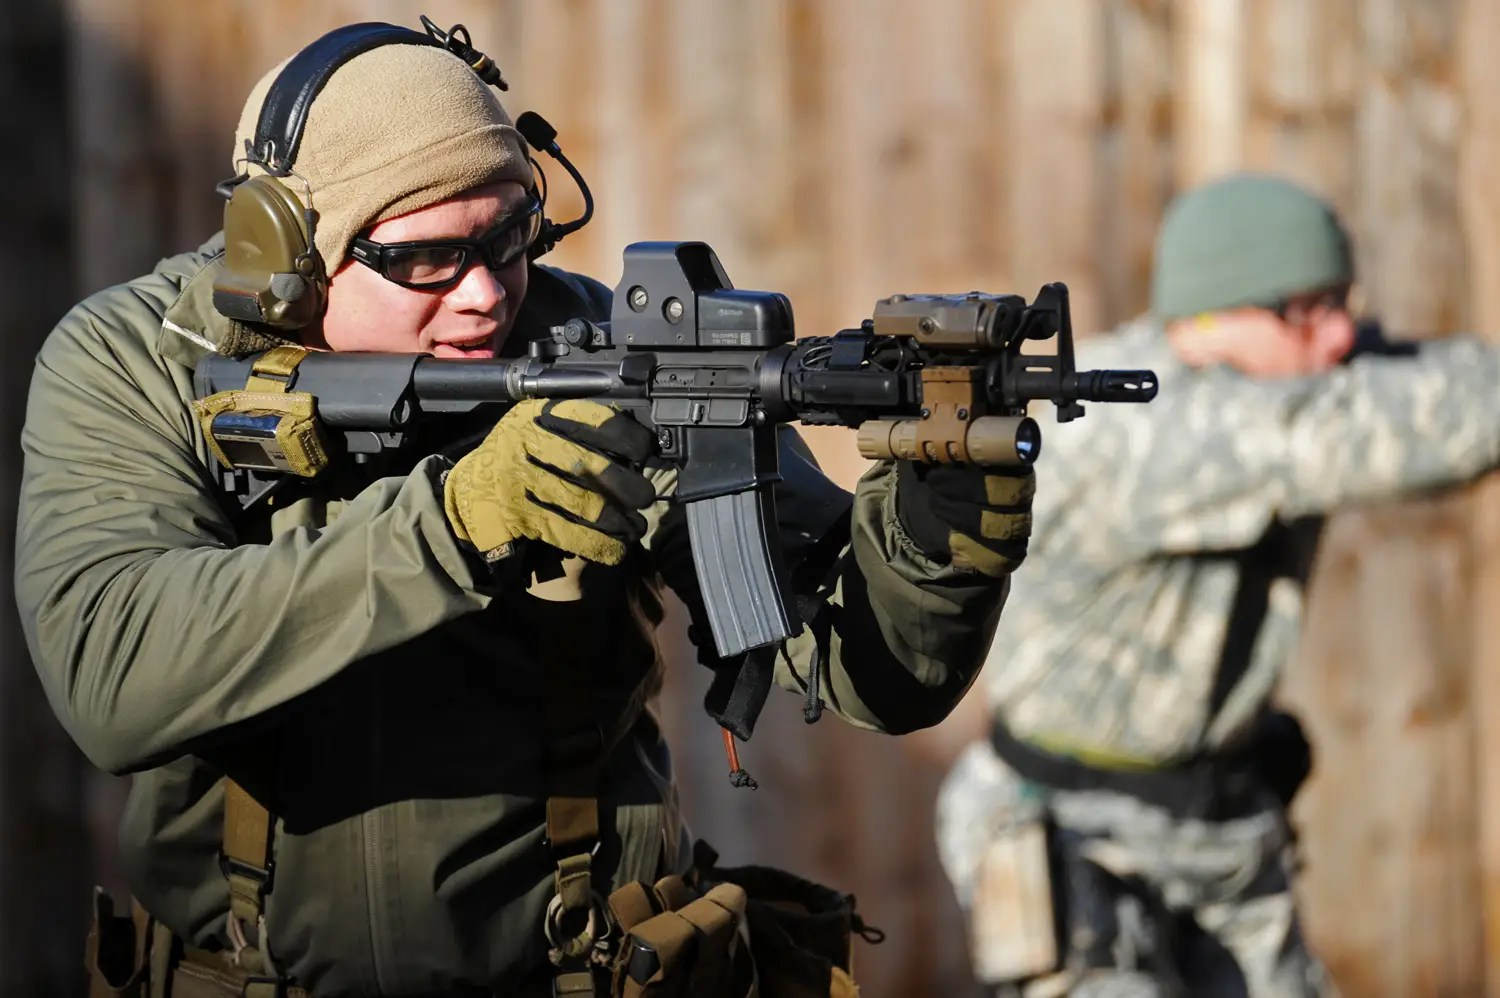 They have some of the most highly-skilled shooters in the military ...